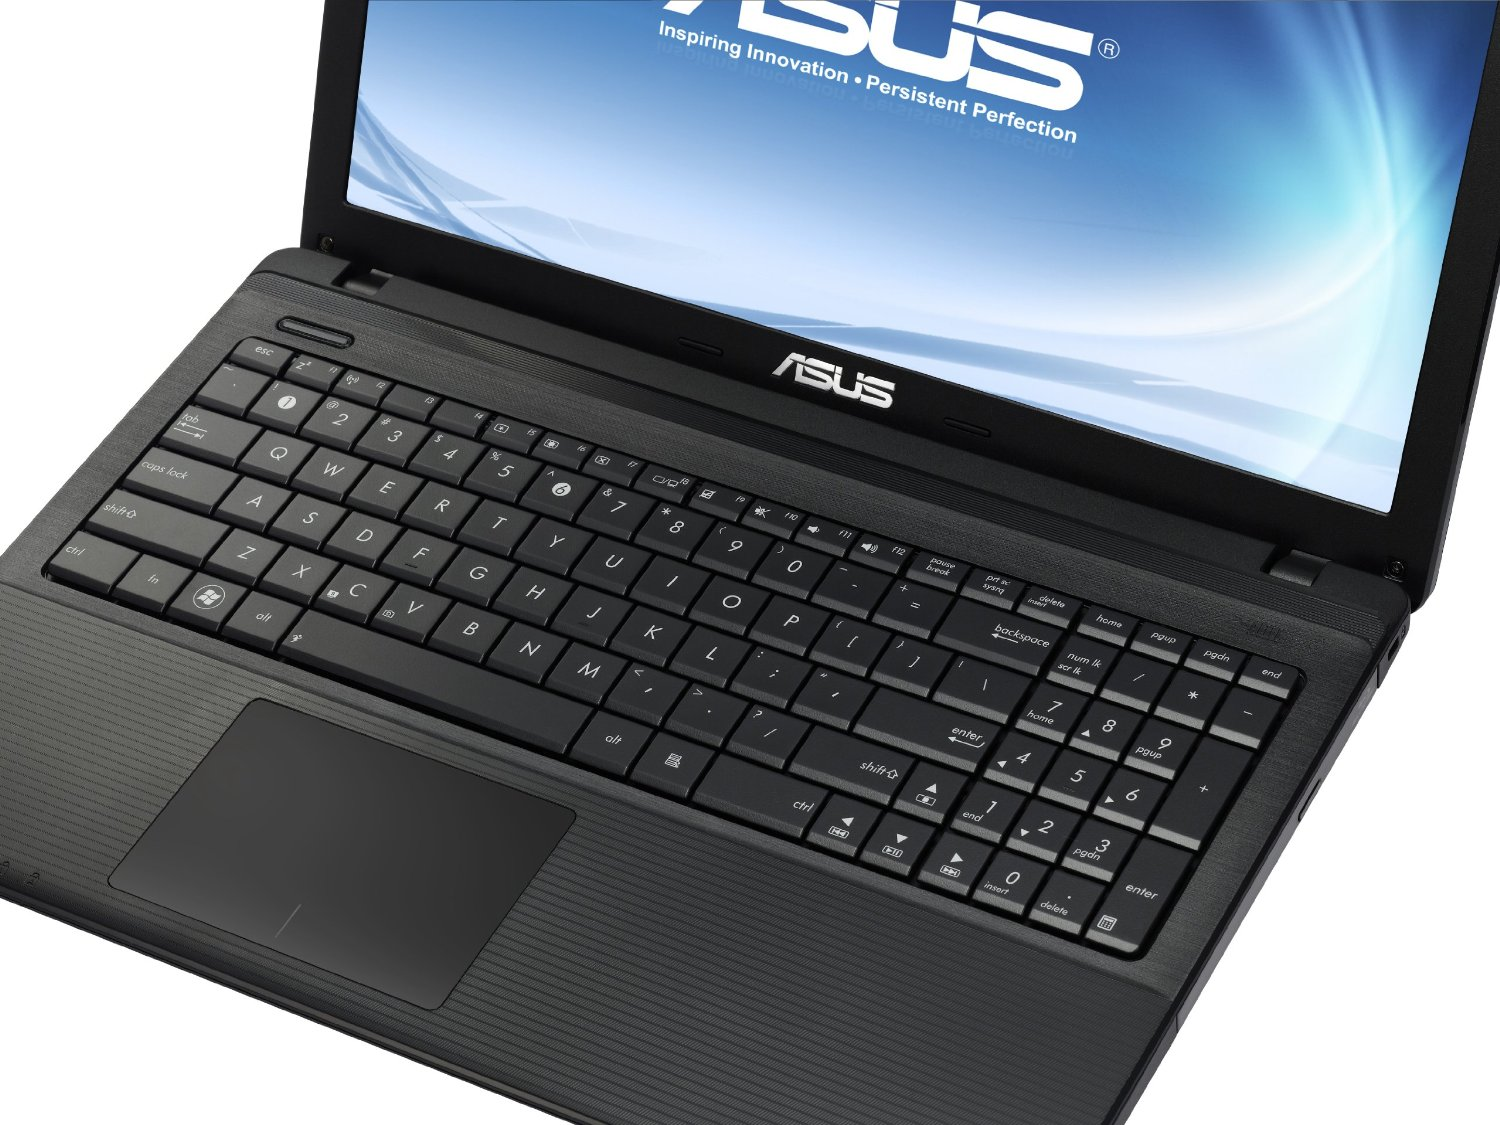 ASUS X55SV WINDOWS 7 DRIVER DOWNLOAD